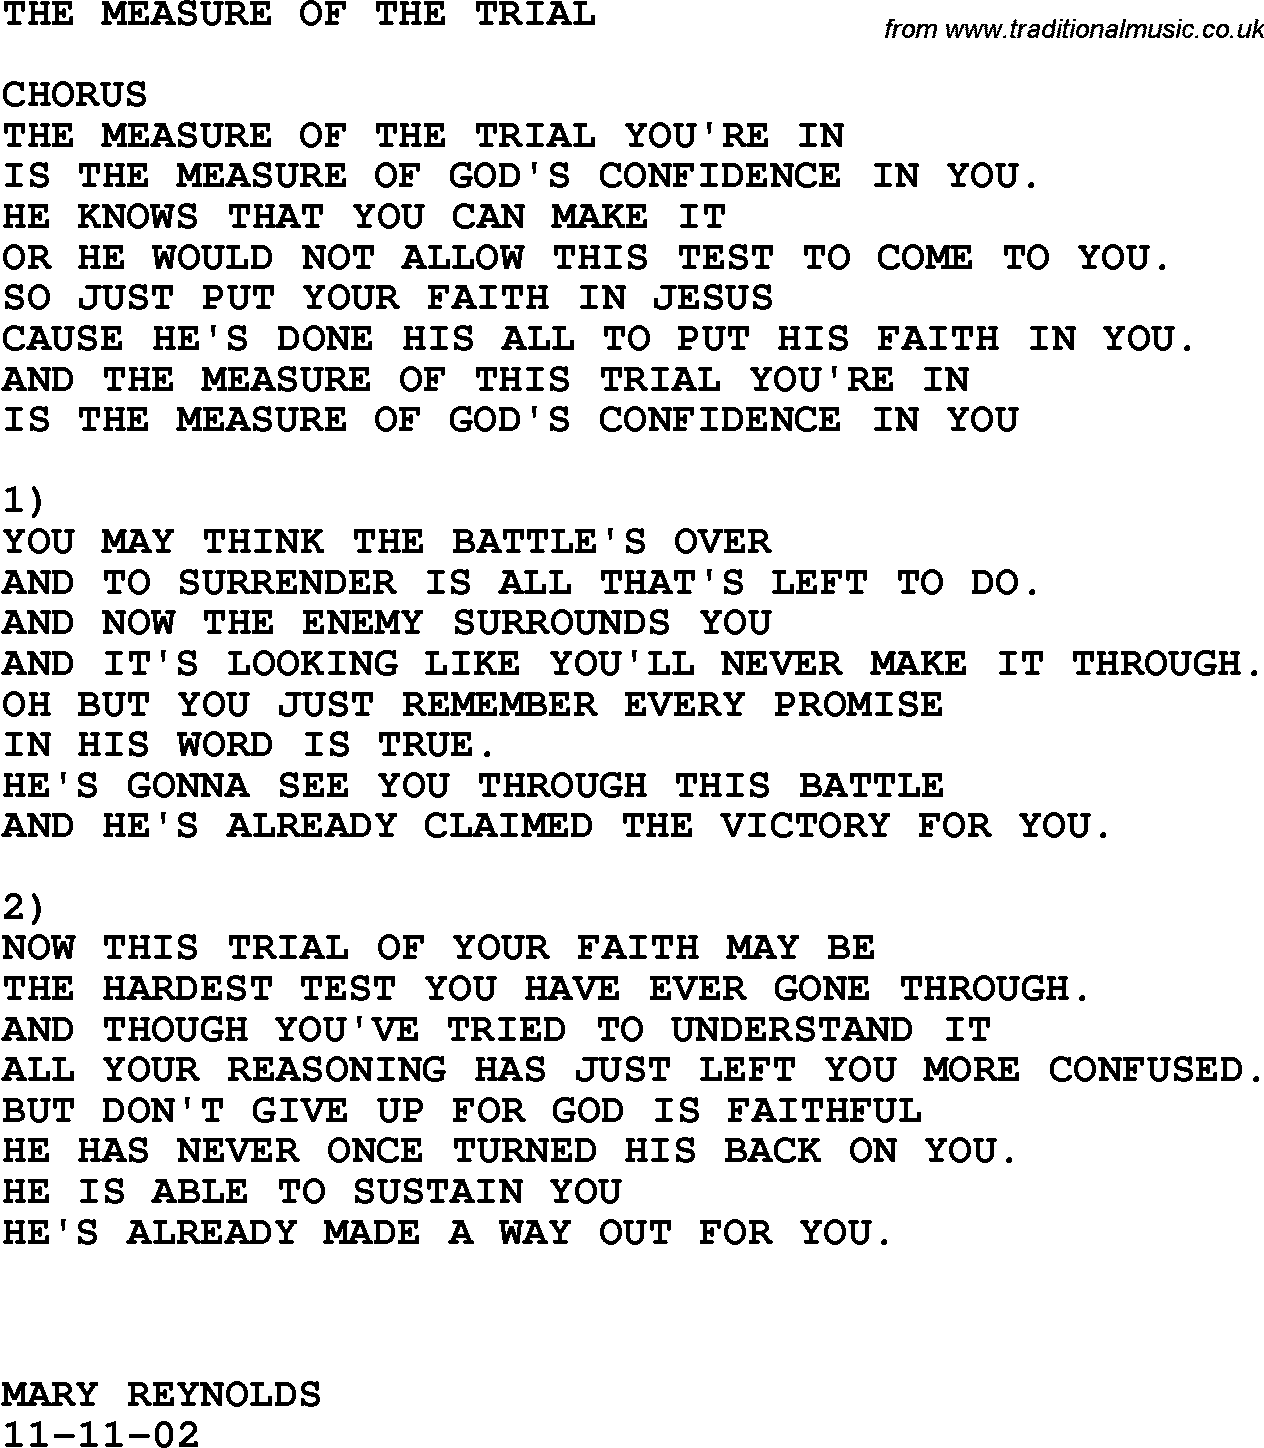 Southern and bluegrass gospel song the measure of the trial lyrics 1750 country bluegrass and southern gospel songs lyrics chords printable pdf for download hexwebz Image collections